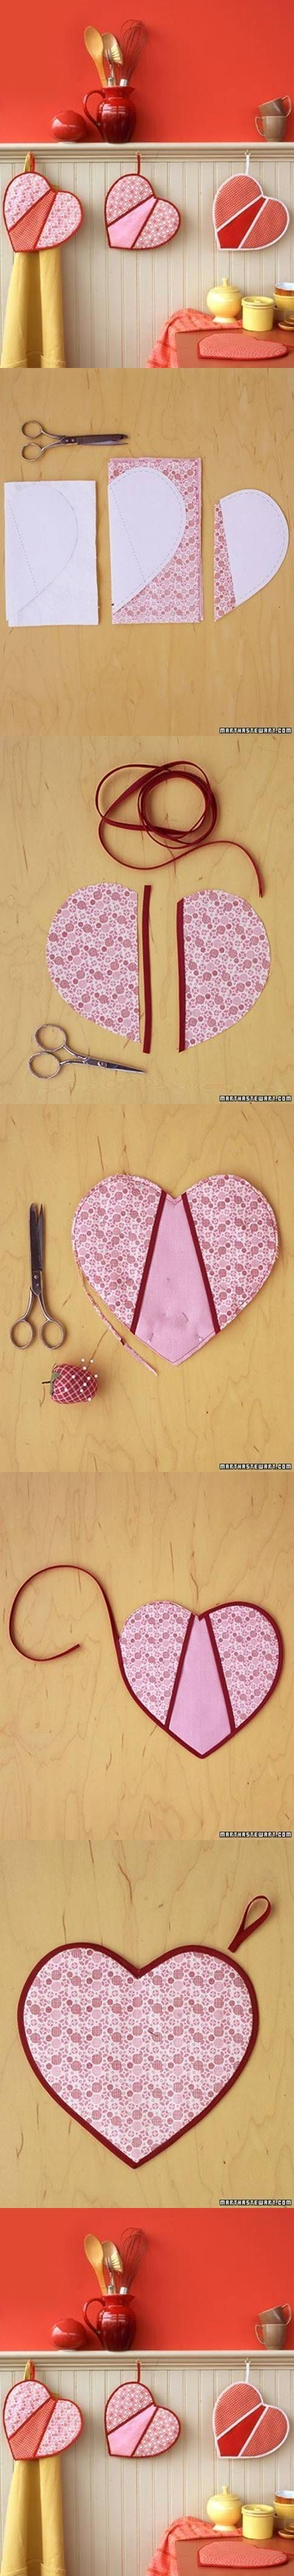 White pot holders for crafts - Diy Heart Shaped Pot Holders 3